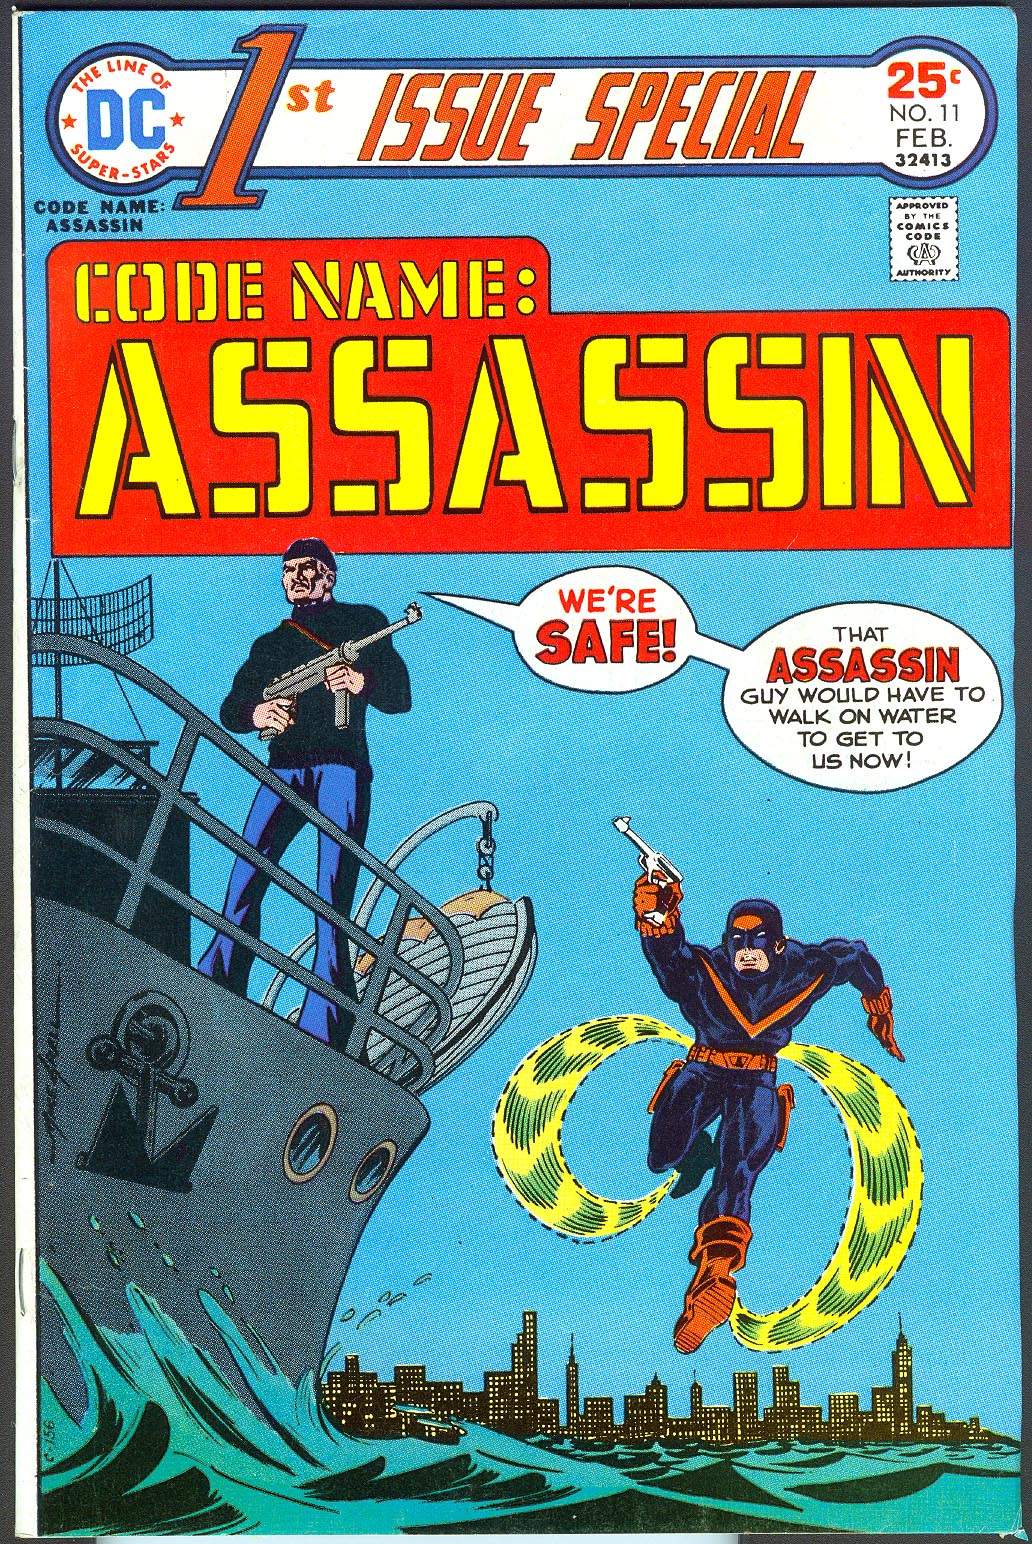 1 st Issue Special 11 (COde Name Assassin) -VFNM